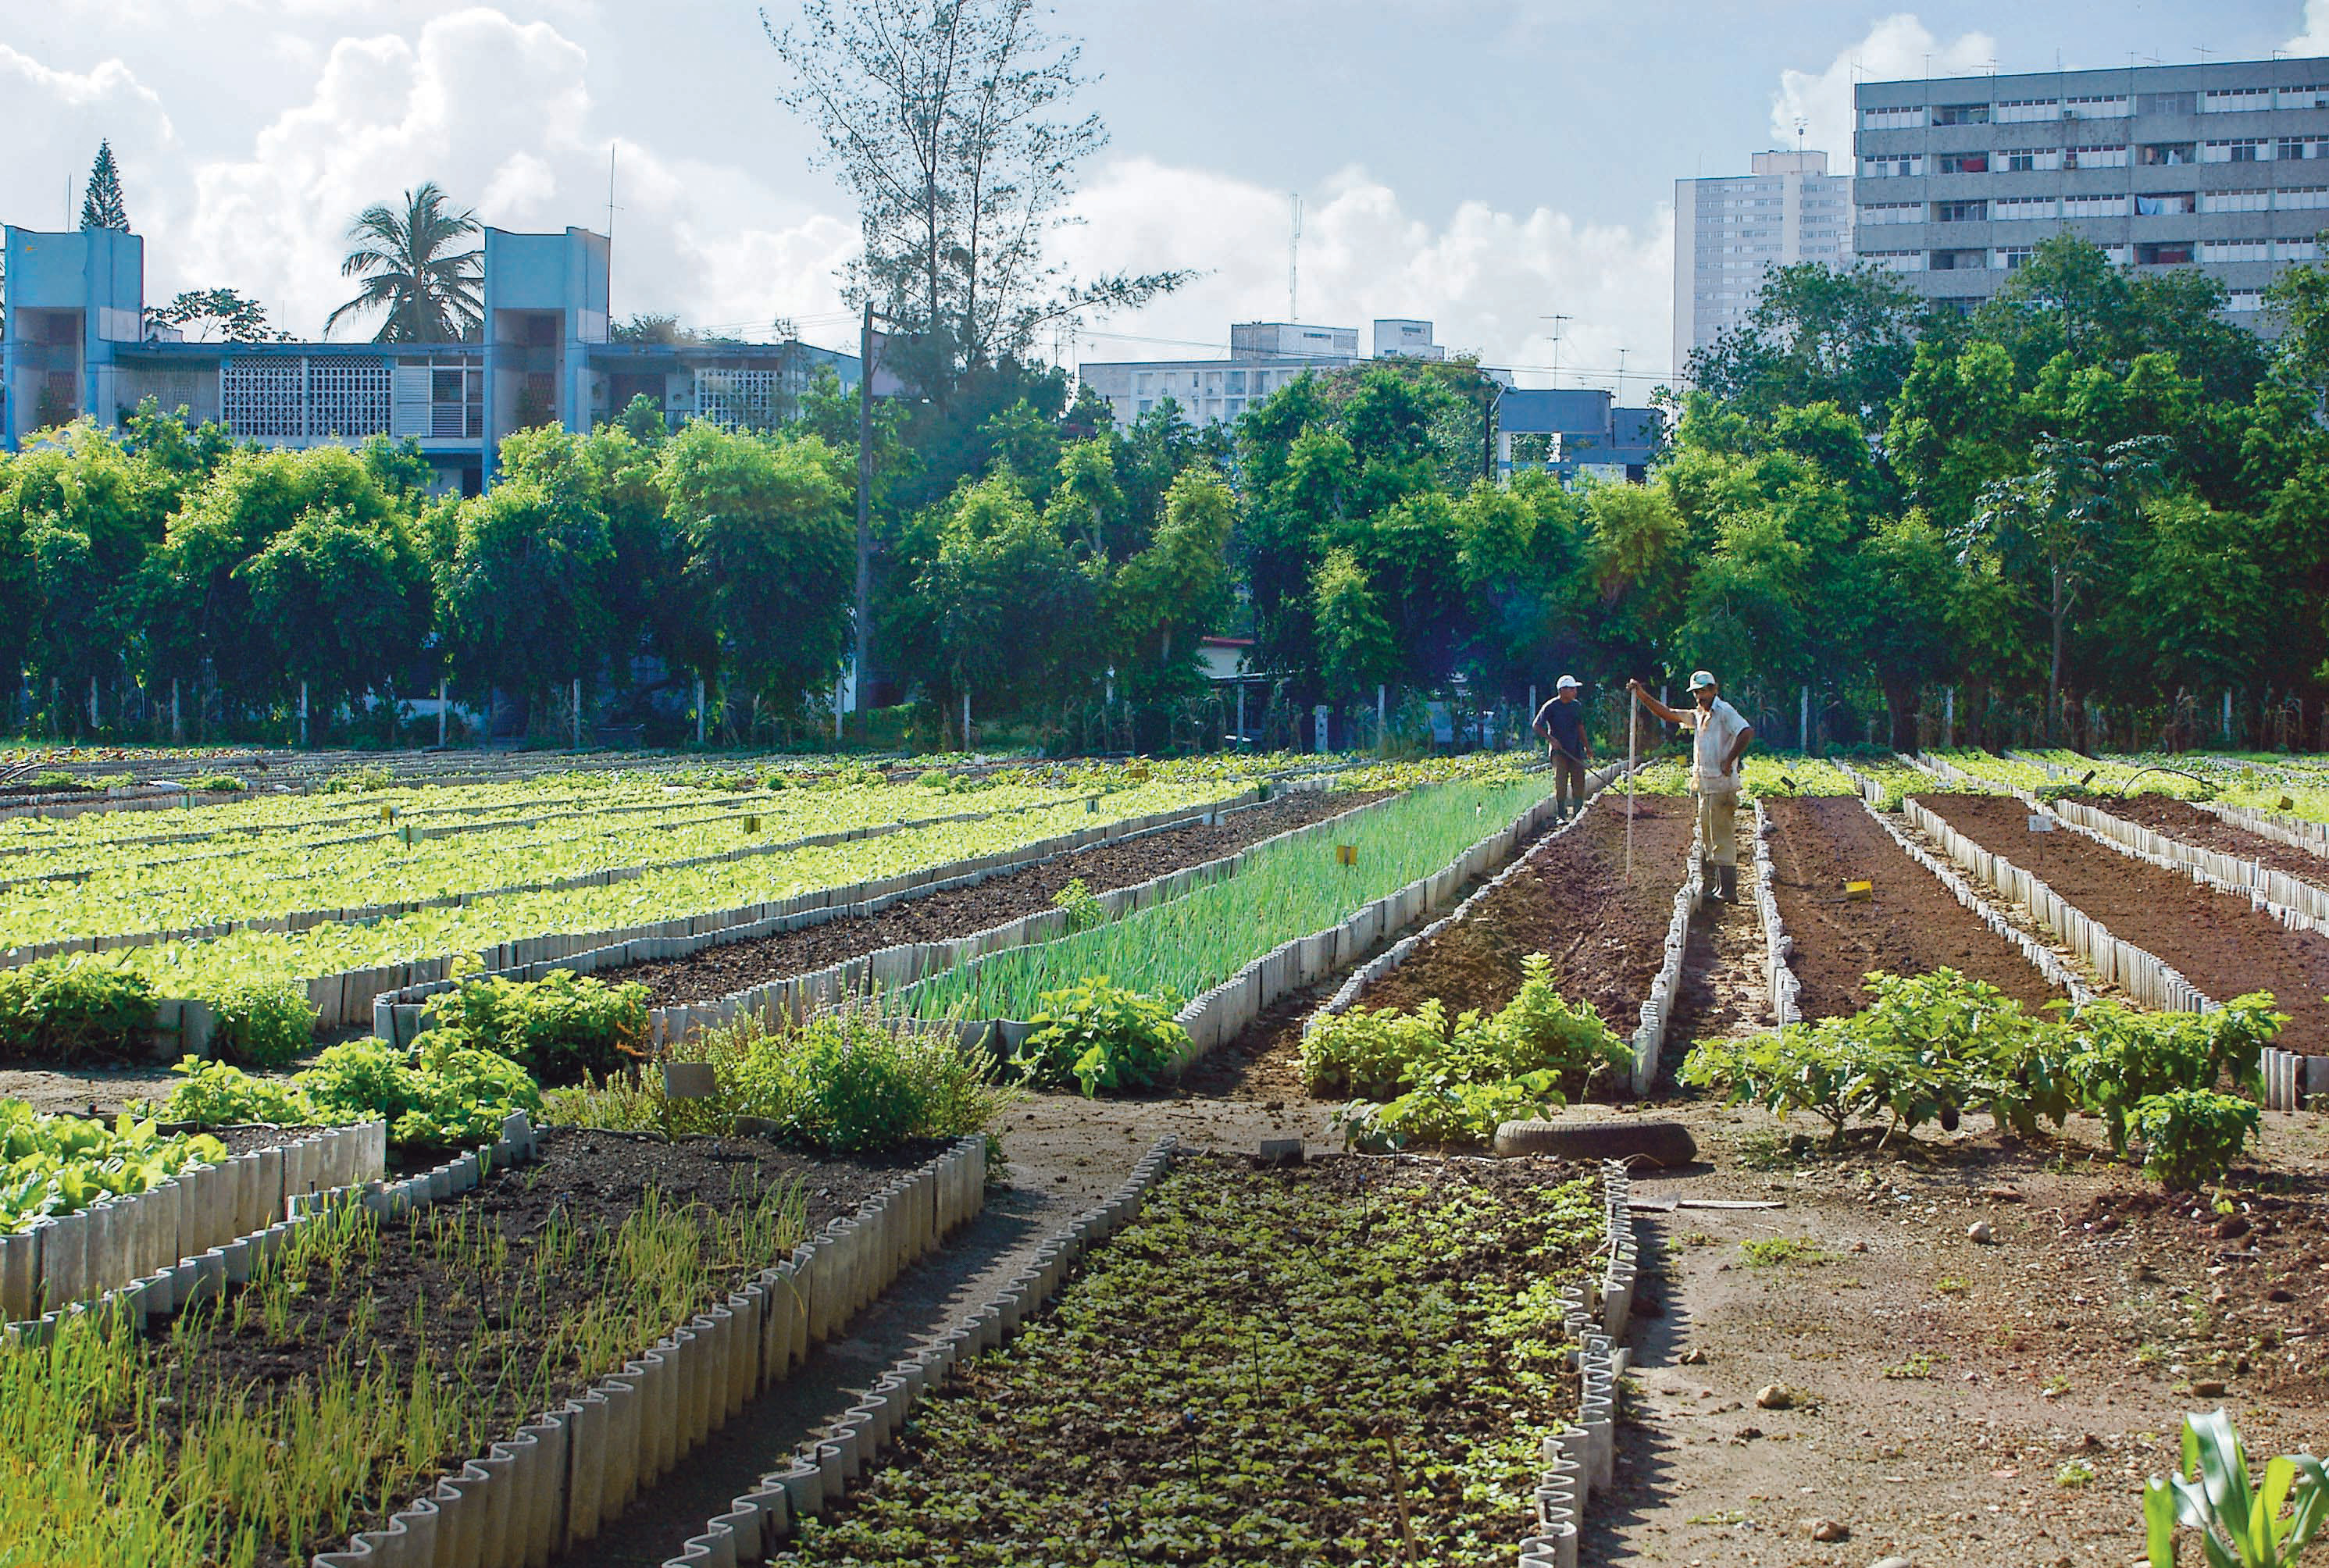 Urban Agriculture In Cuba 2004 John M Morgan From The